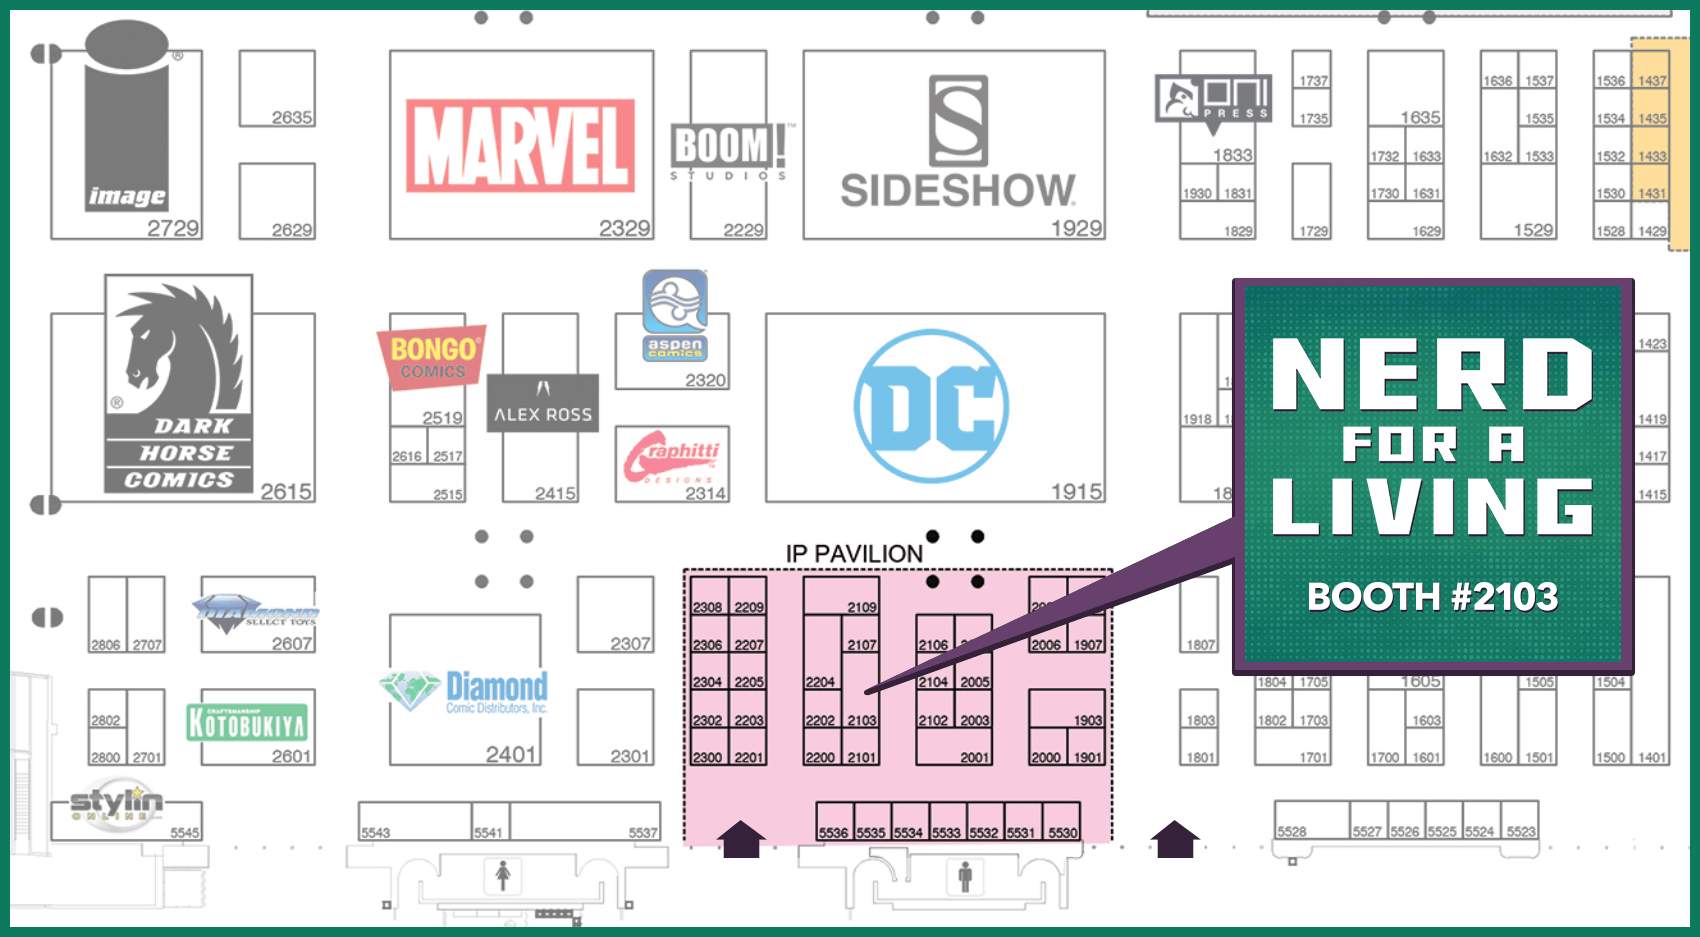 San Diego Comic Con Floor Map - Nerd For A Living at Booth 2103